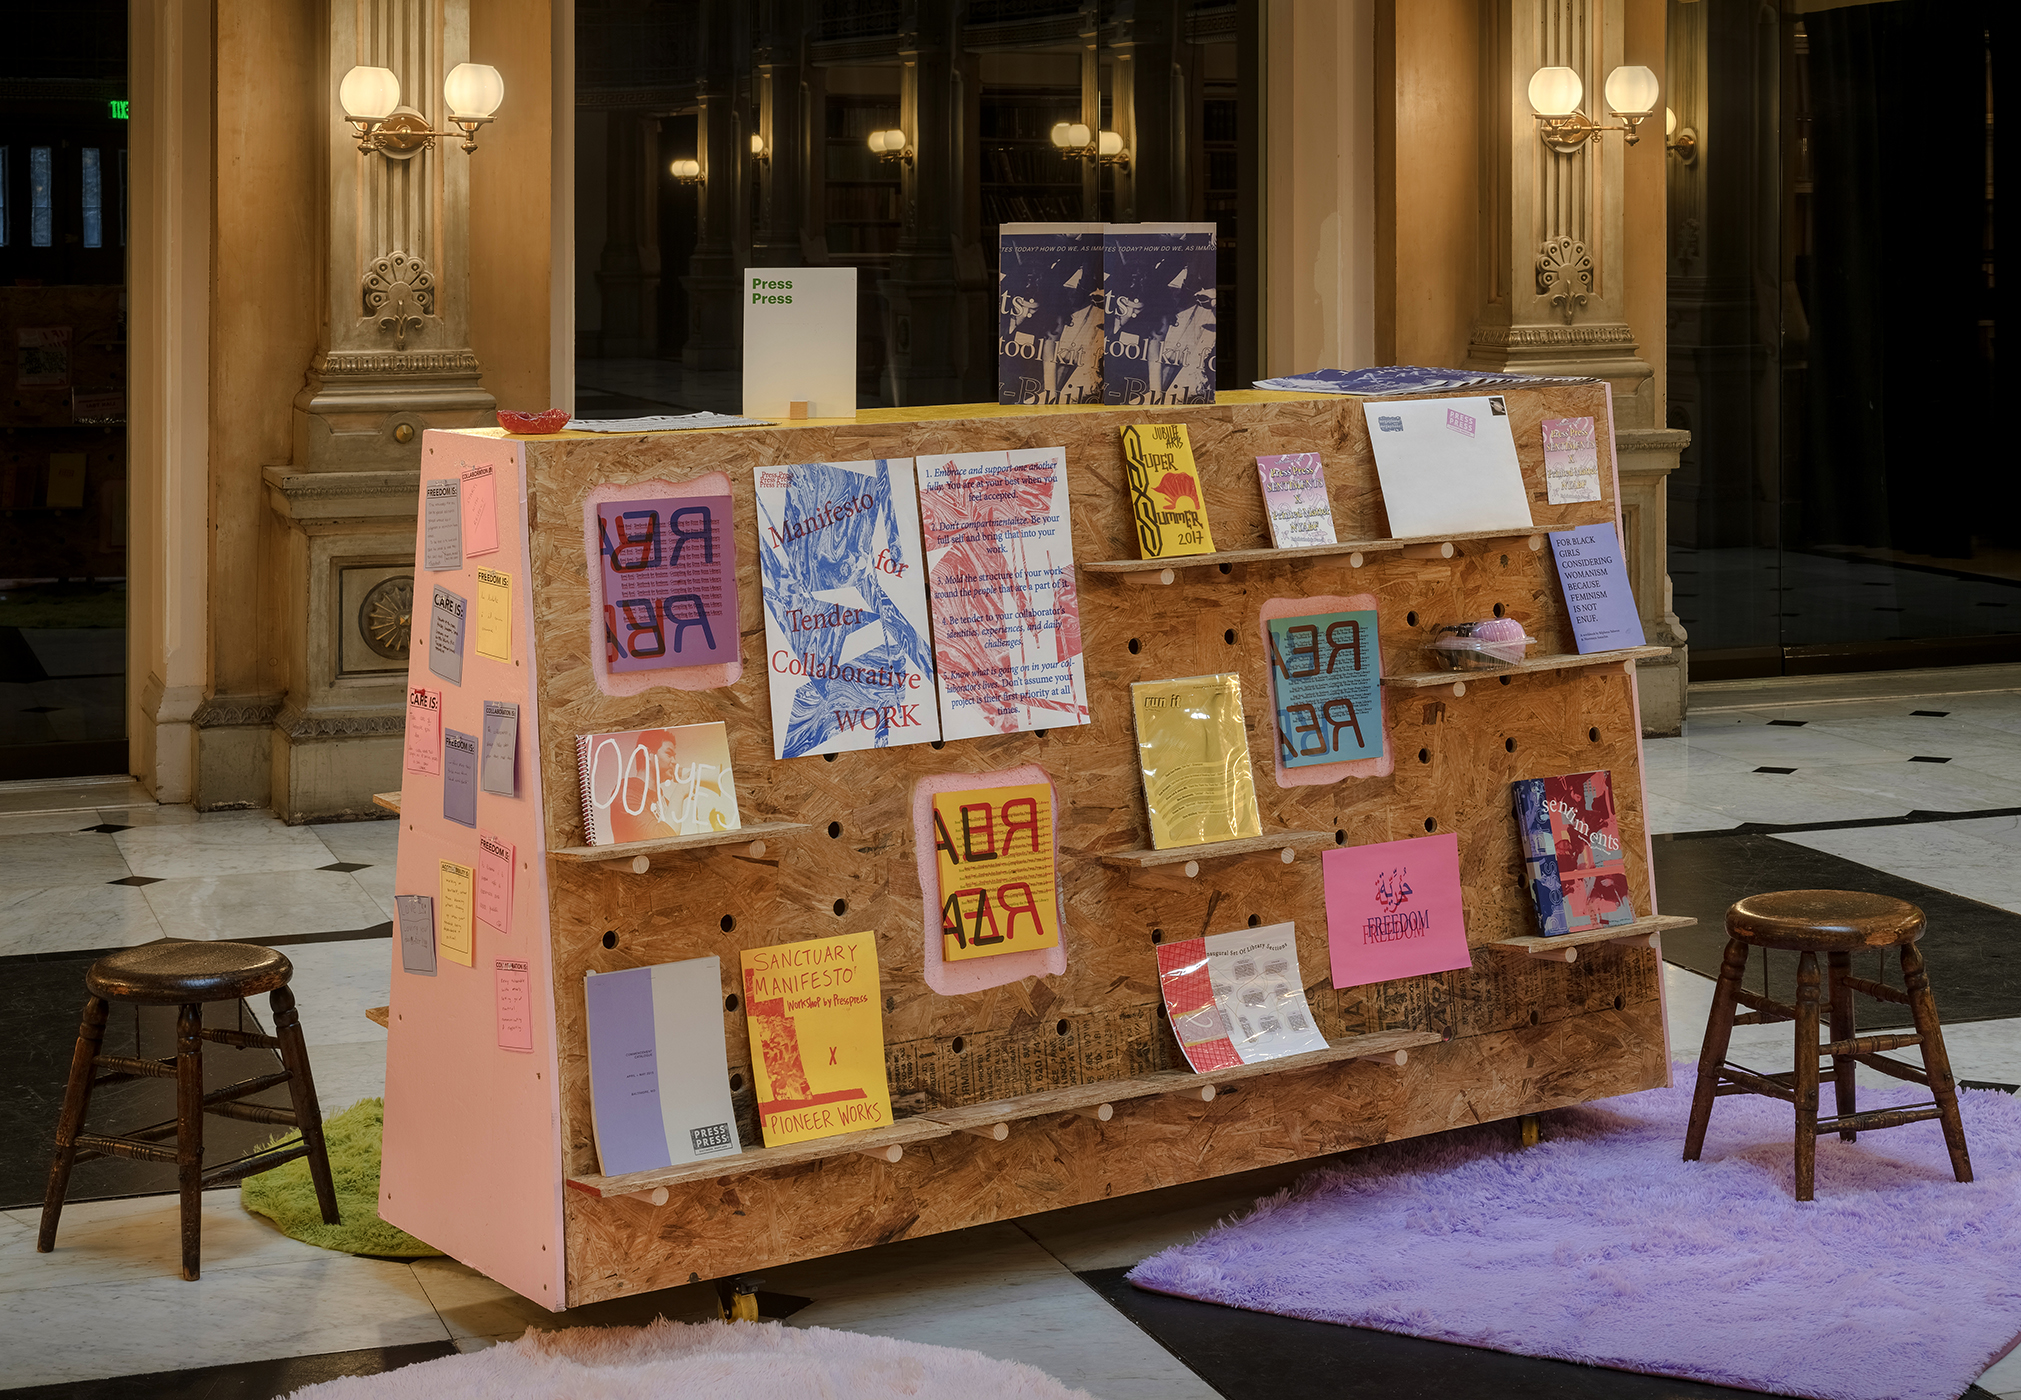 wooden mobile cart displaying Press Press publication archive at George Peabody Library